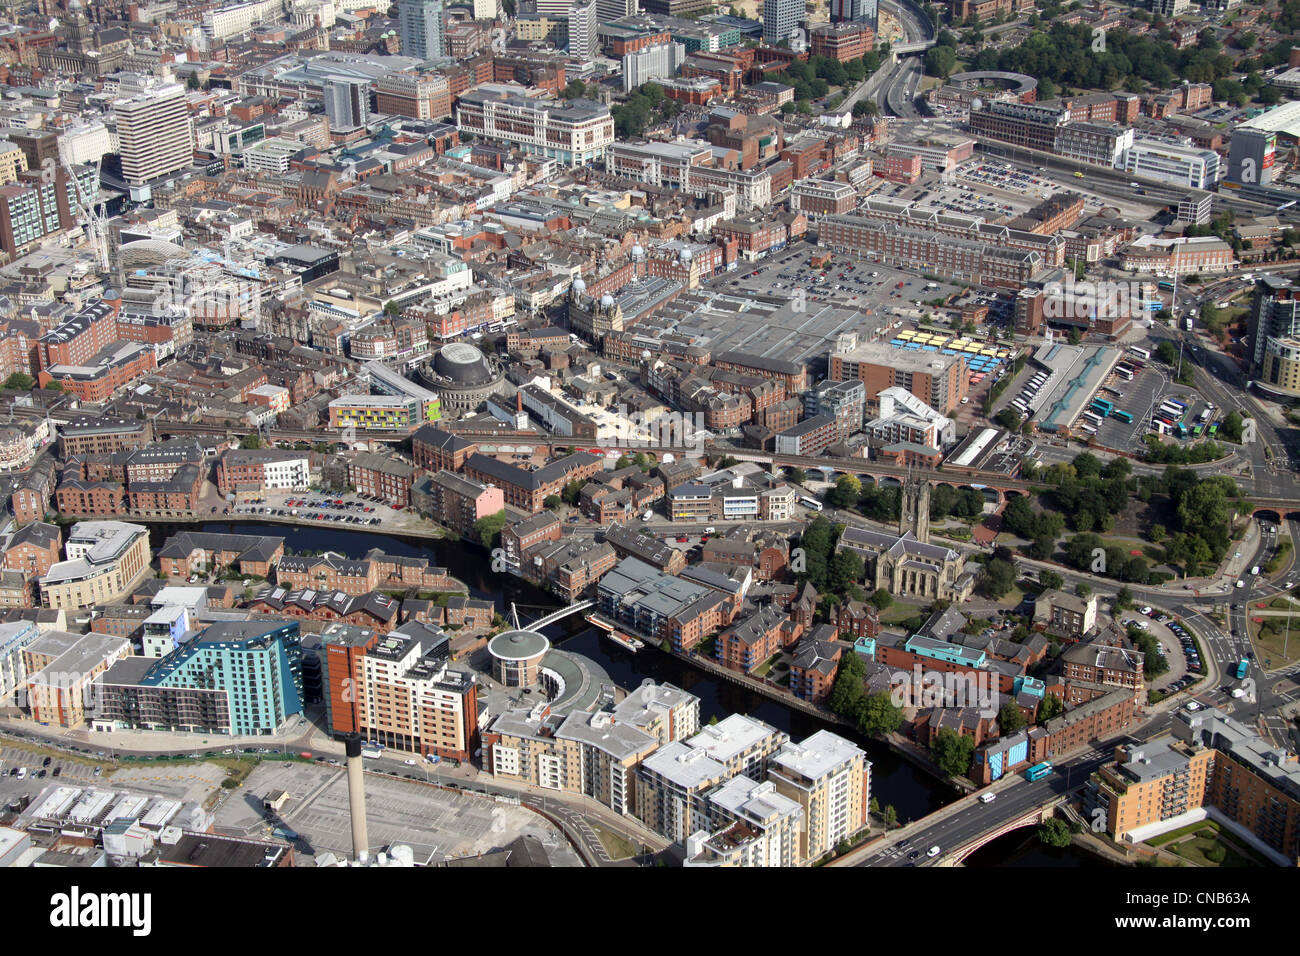 aerial view of the River Aire and Riverside area of Leeds City Centre, including The Calls and Kirkgate Market area - Stock Image